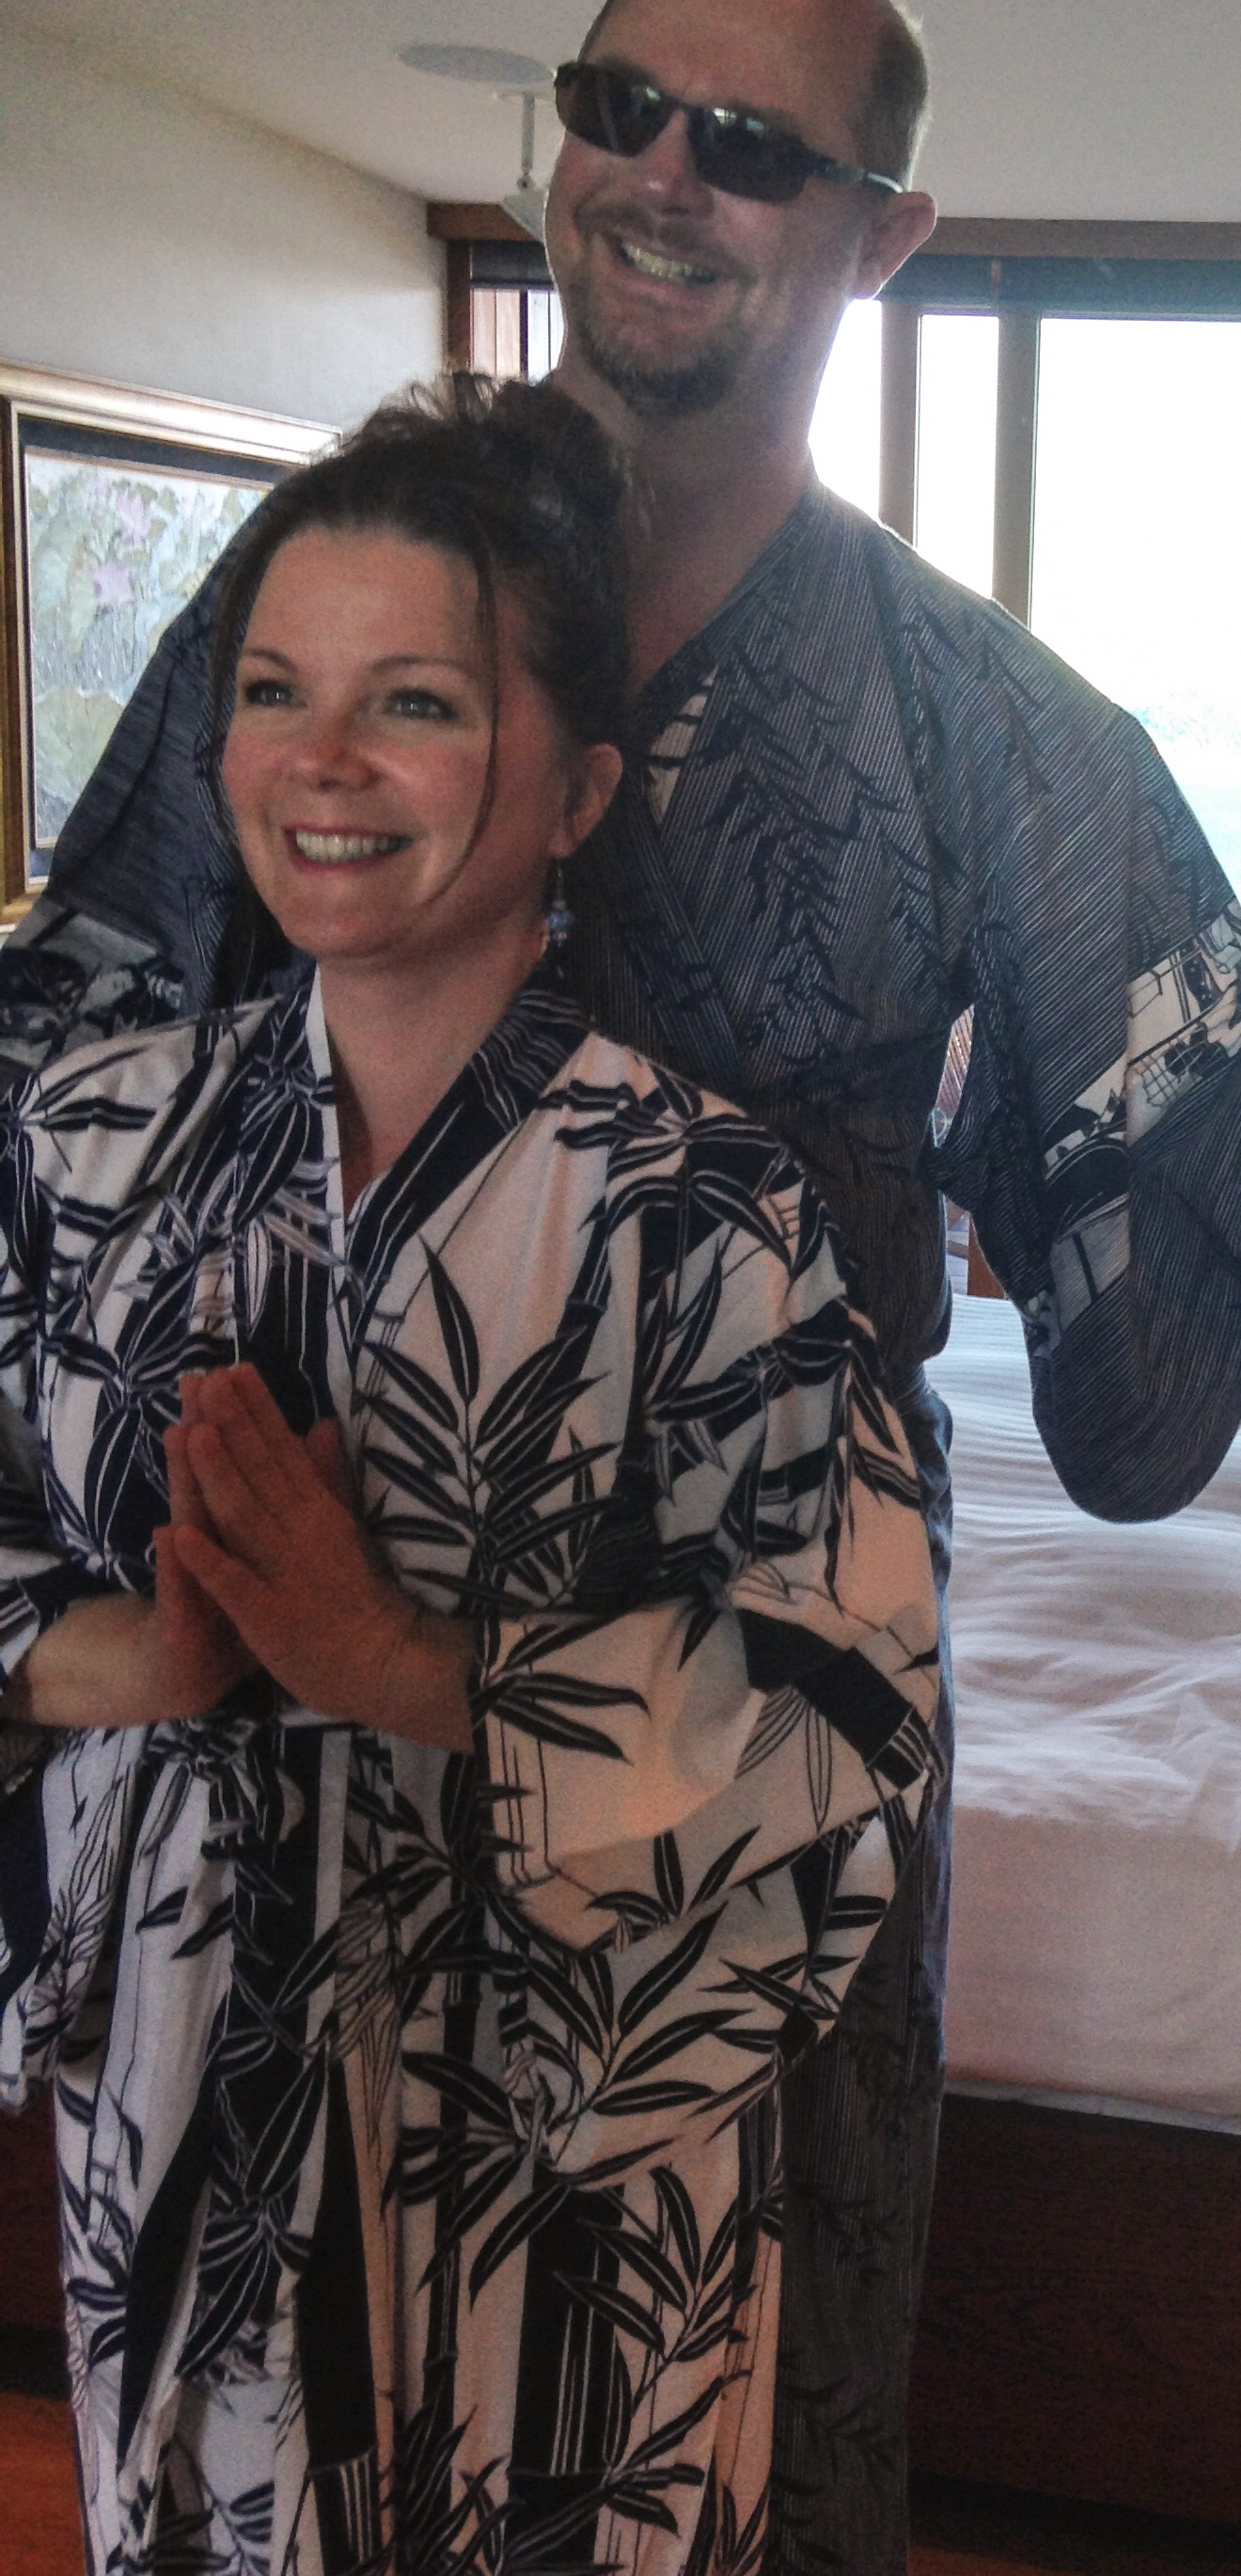 Chris and Monica in their yukata